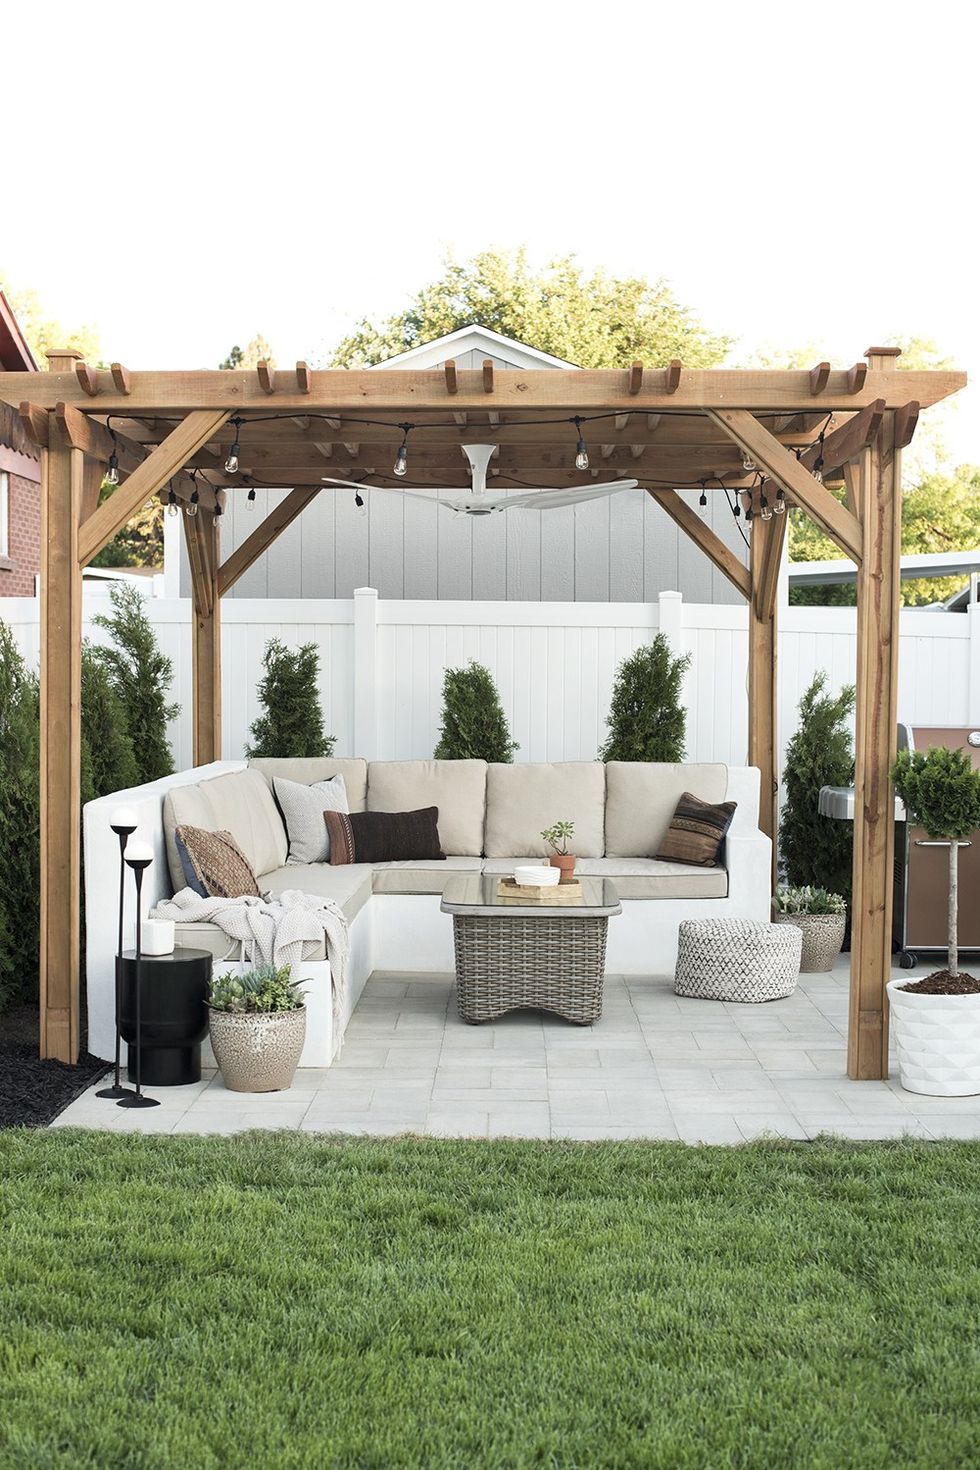 Pergola Ideas for Decorating the Beautiful Outdoor Space